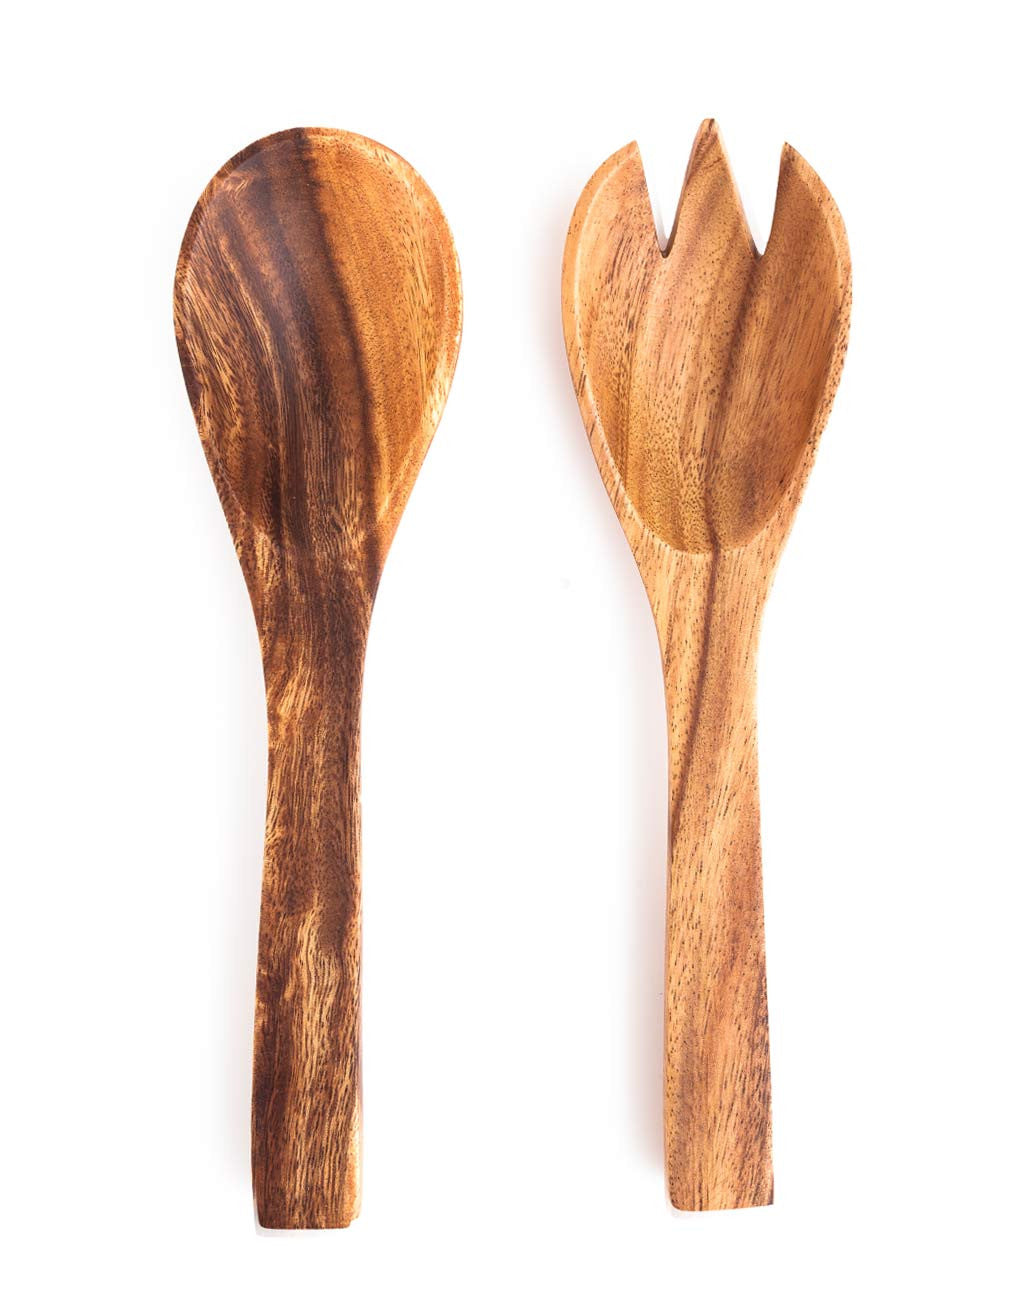 Fair trade acacia wood hand carved salad servers the